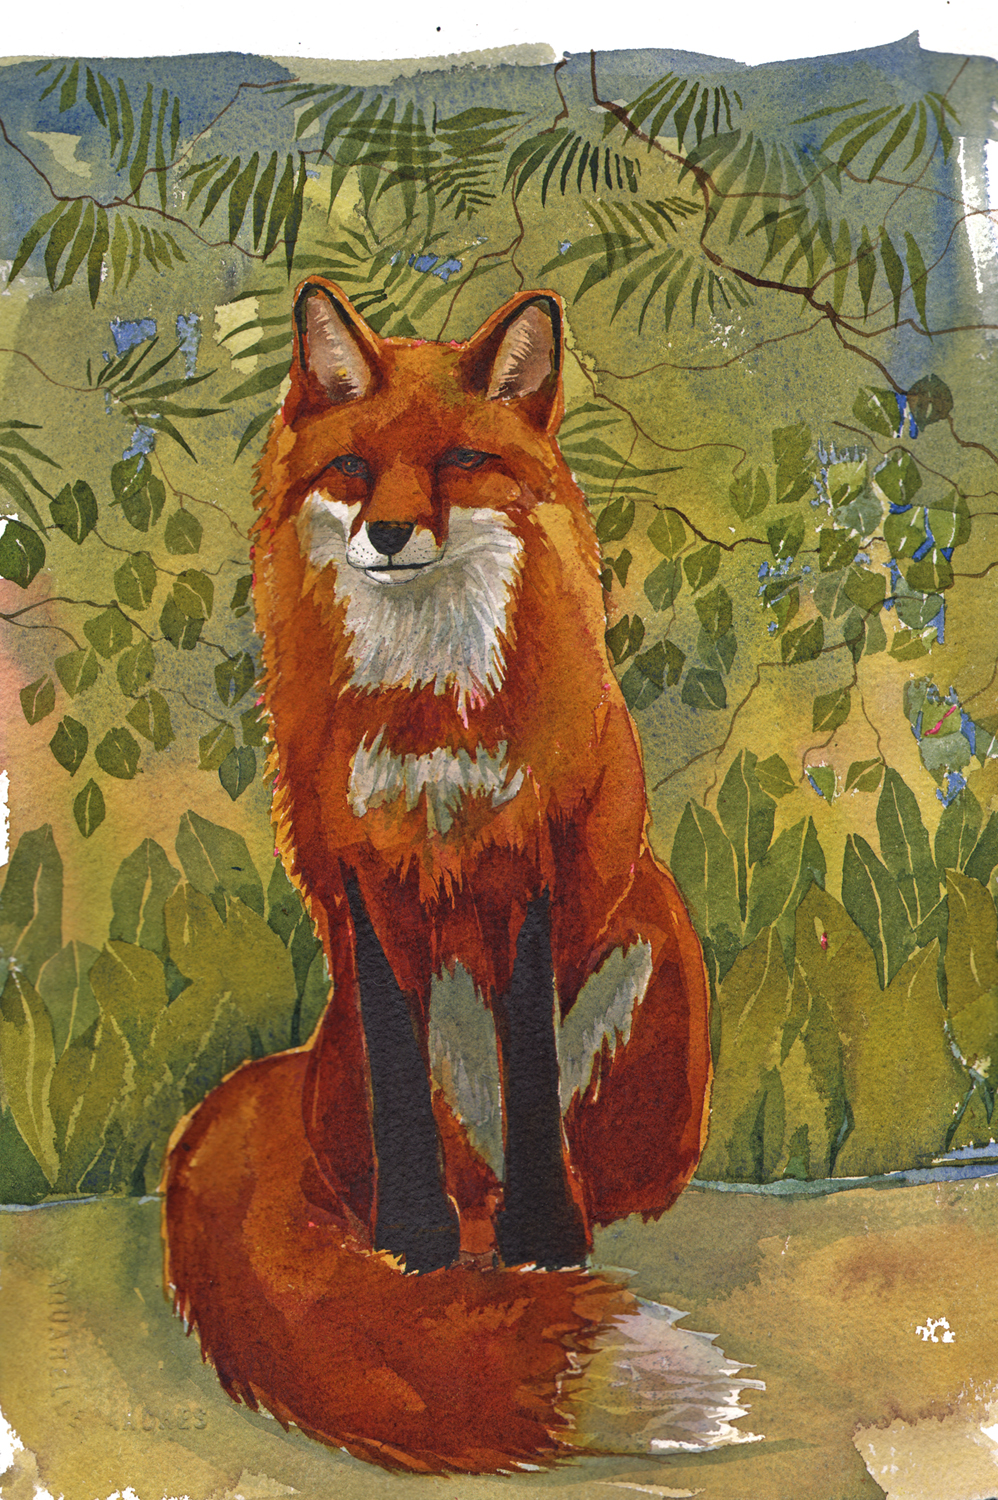 Fox, New image